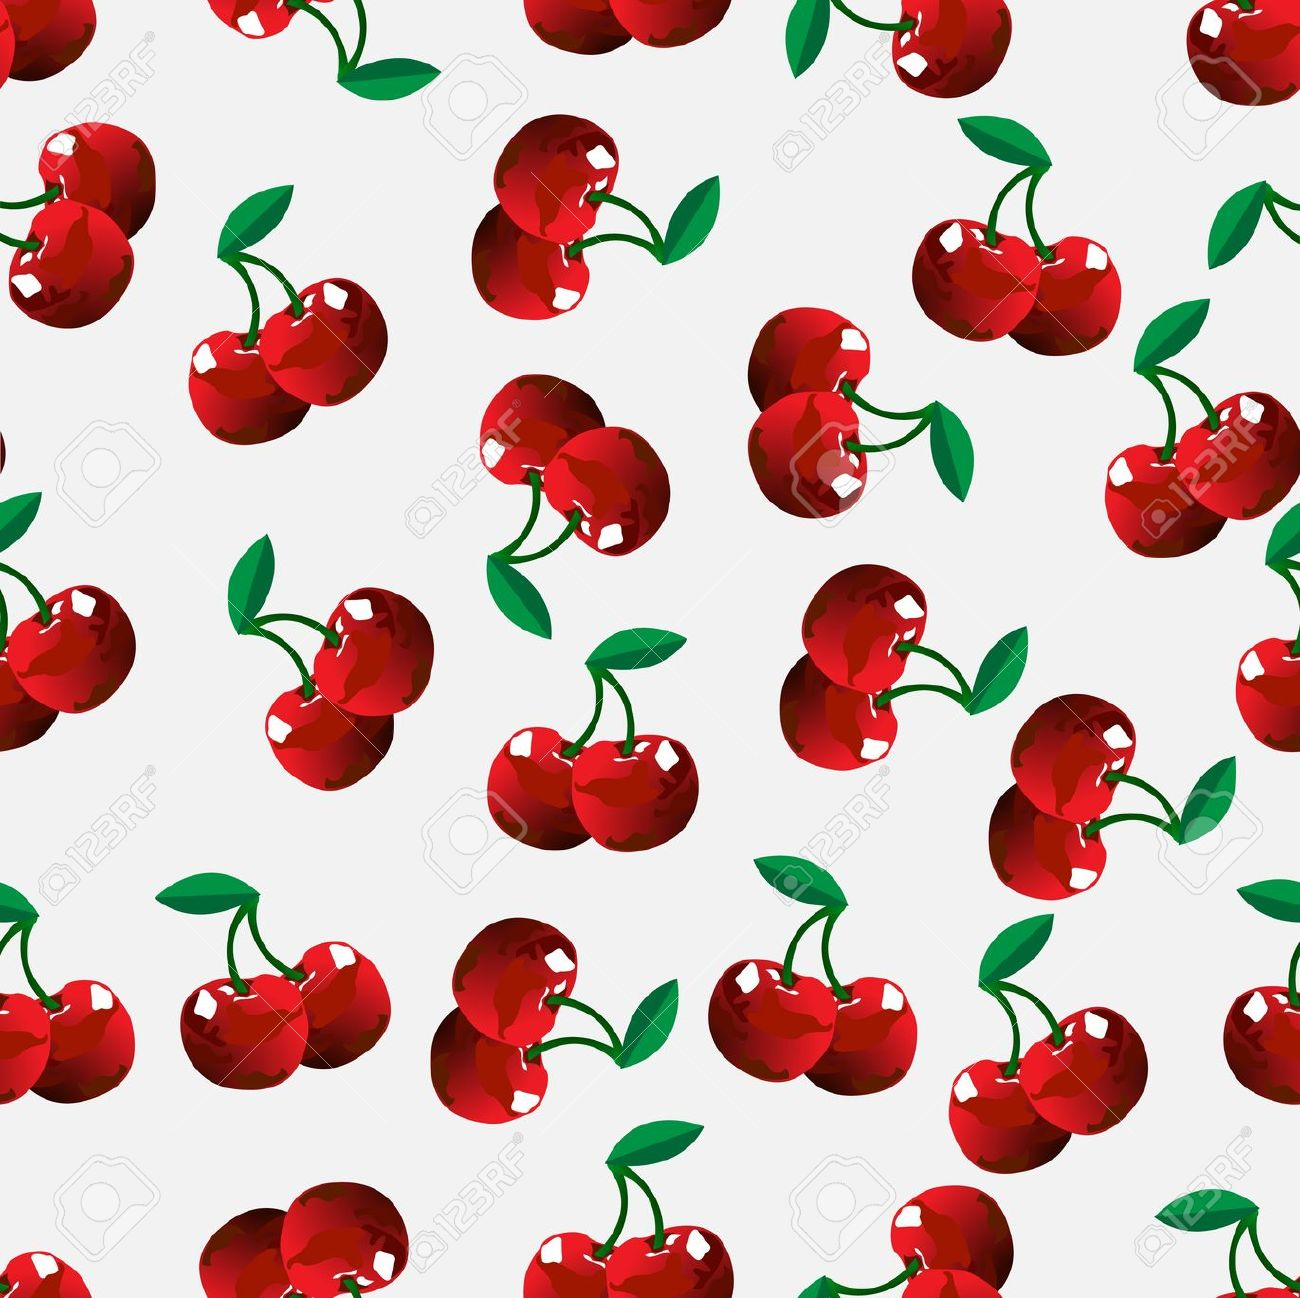 Seamless Cherry Background. Vector Illustration Royalty Free.